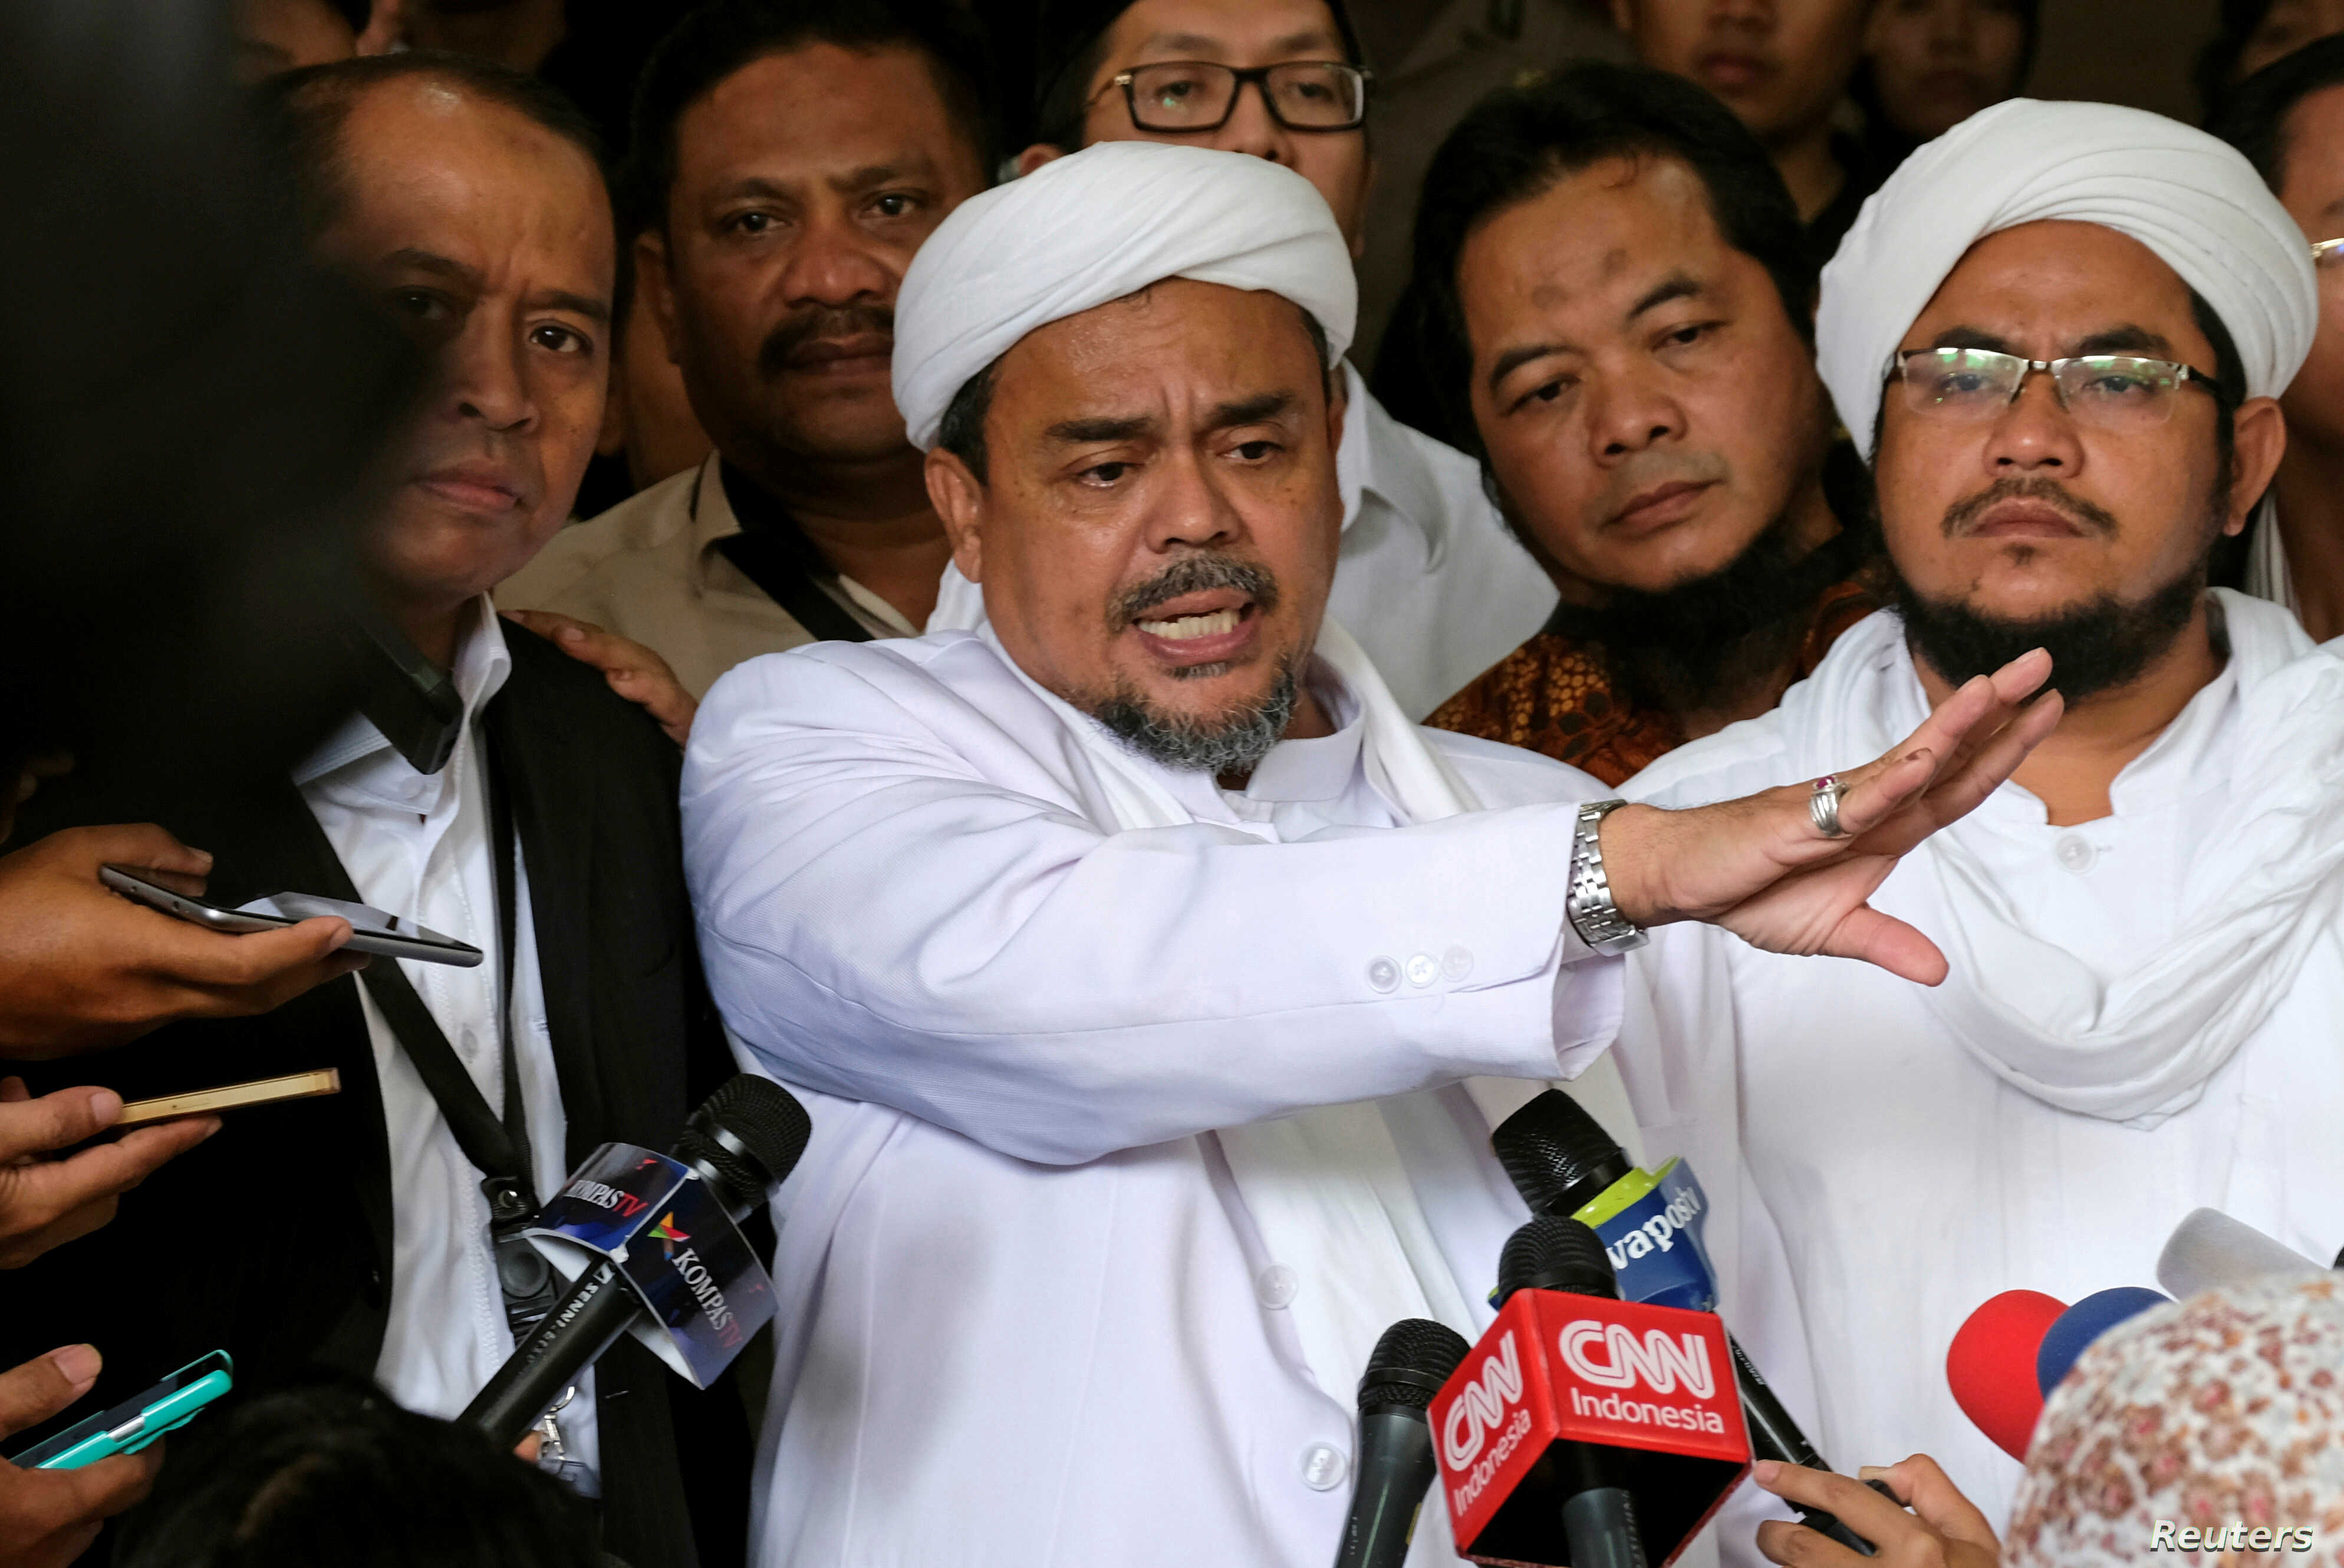 Indonesia Names Islamist Leader A Suspect In Pornography Case Voice Of America English